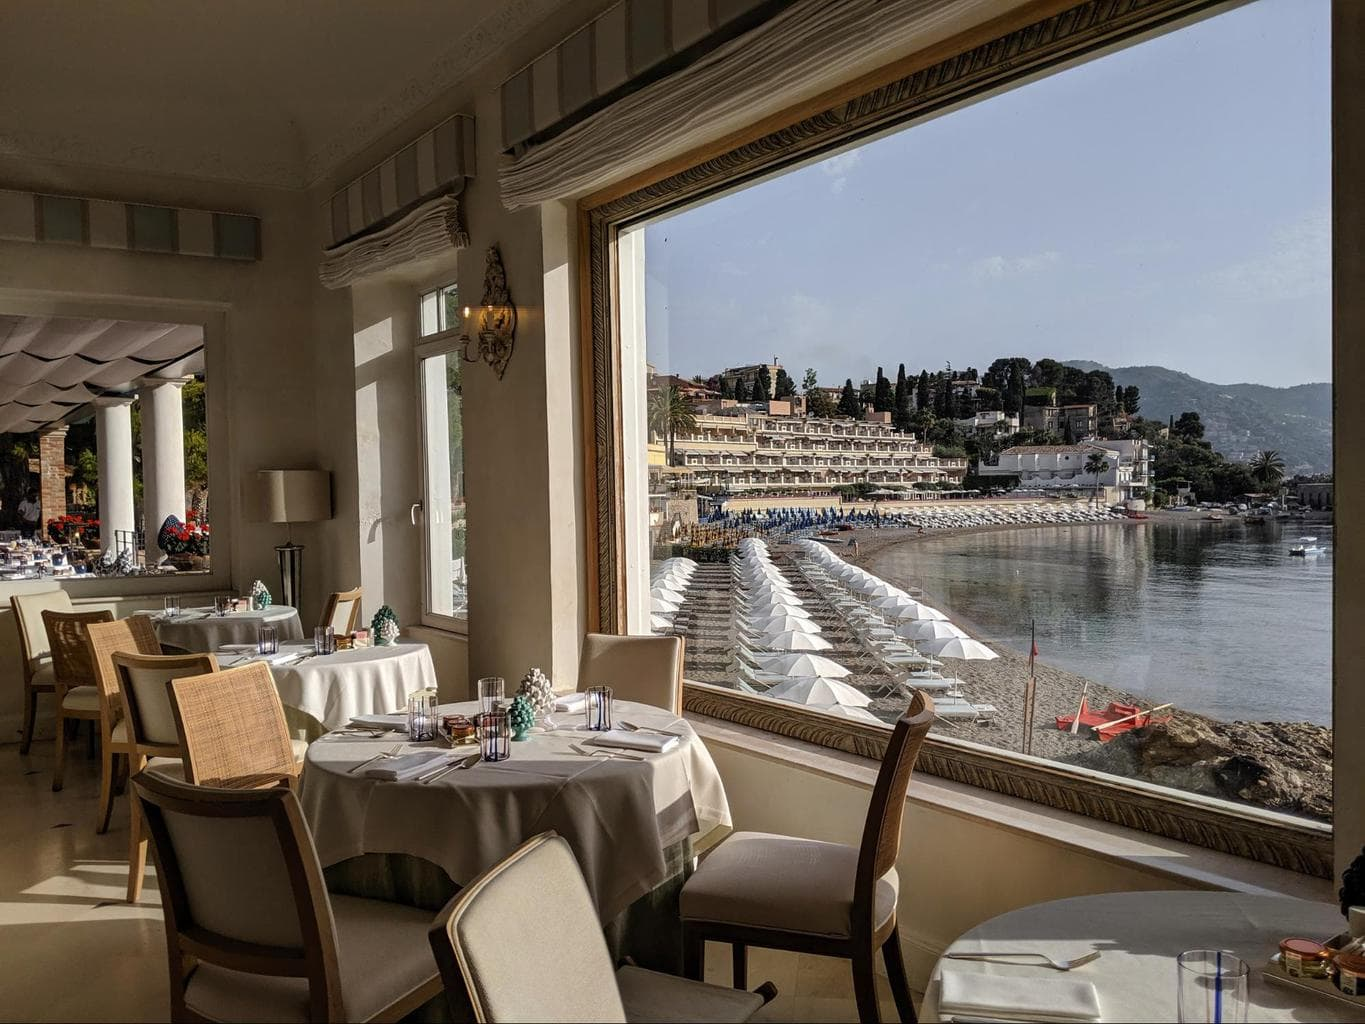 Indoor restaurant at Belmond Villa Sant'Andrea